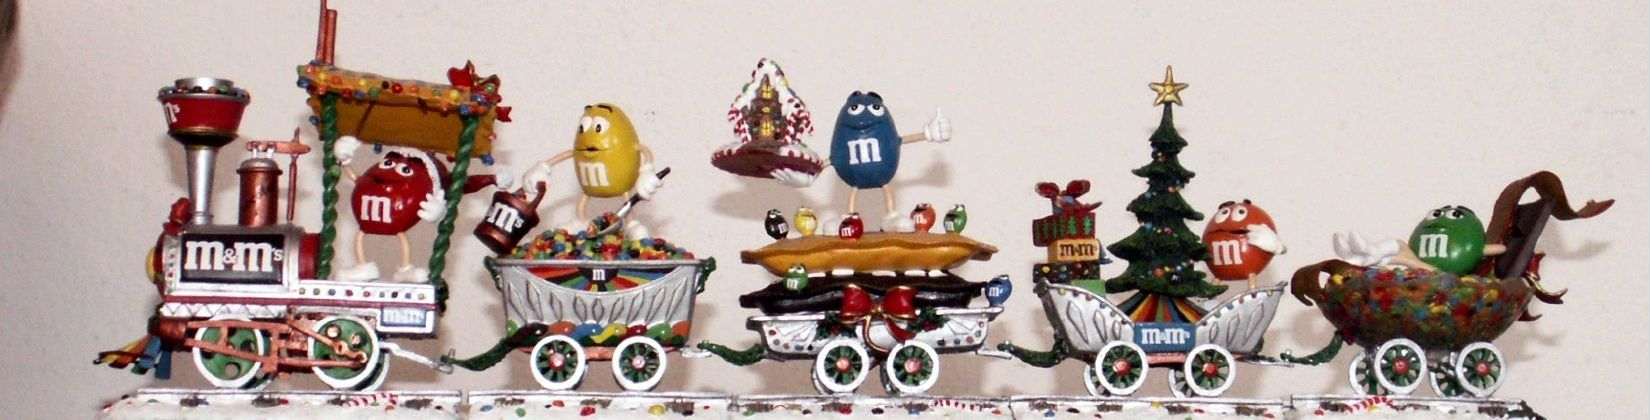 Christmas Train Cast.M M Collectibles From The Danbury Mint